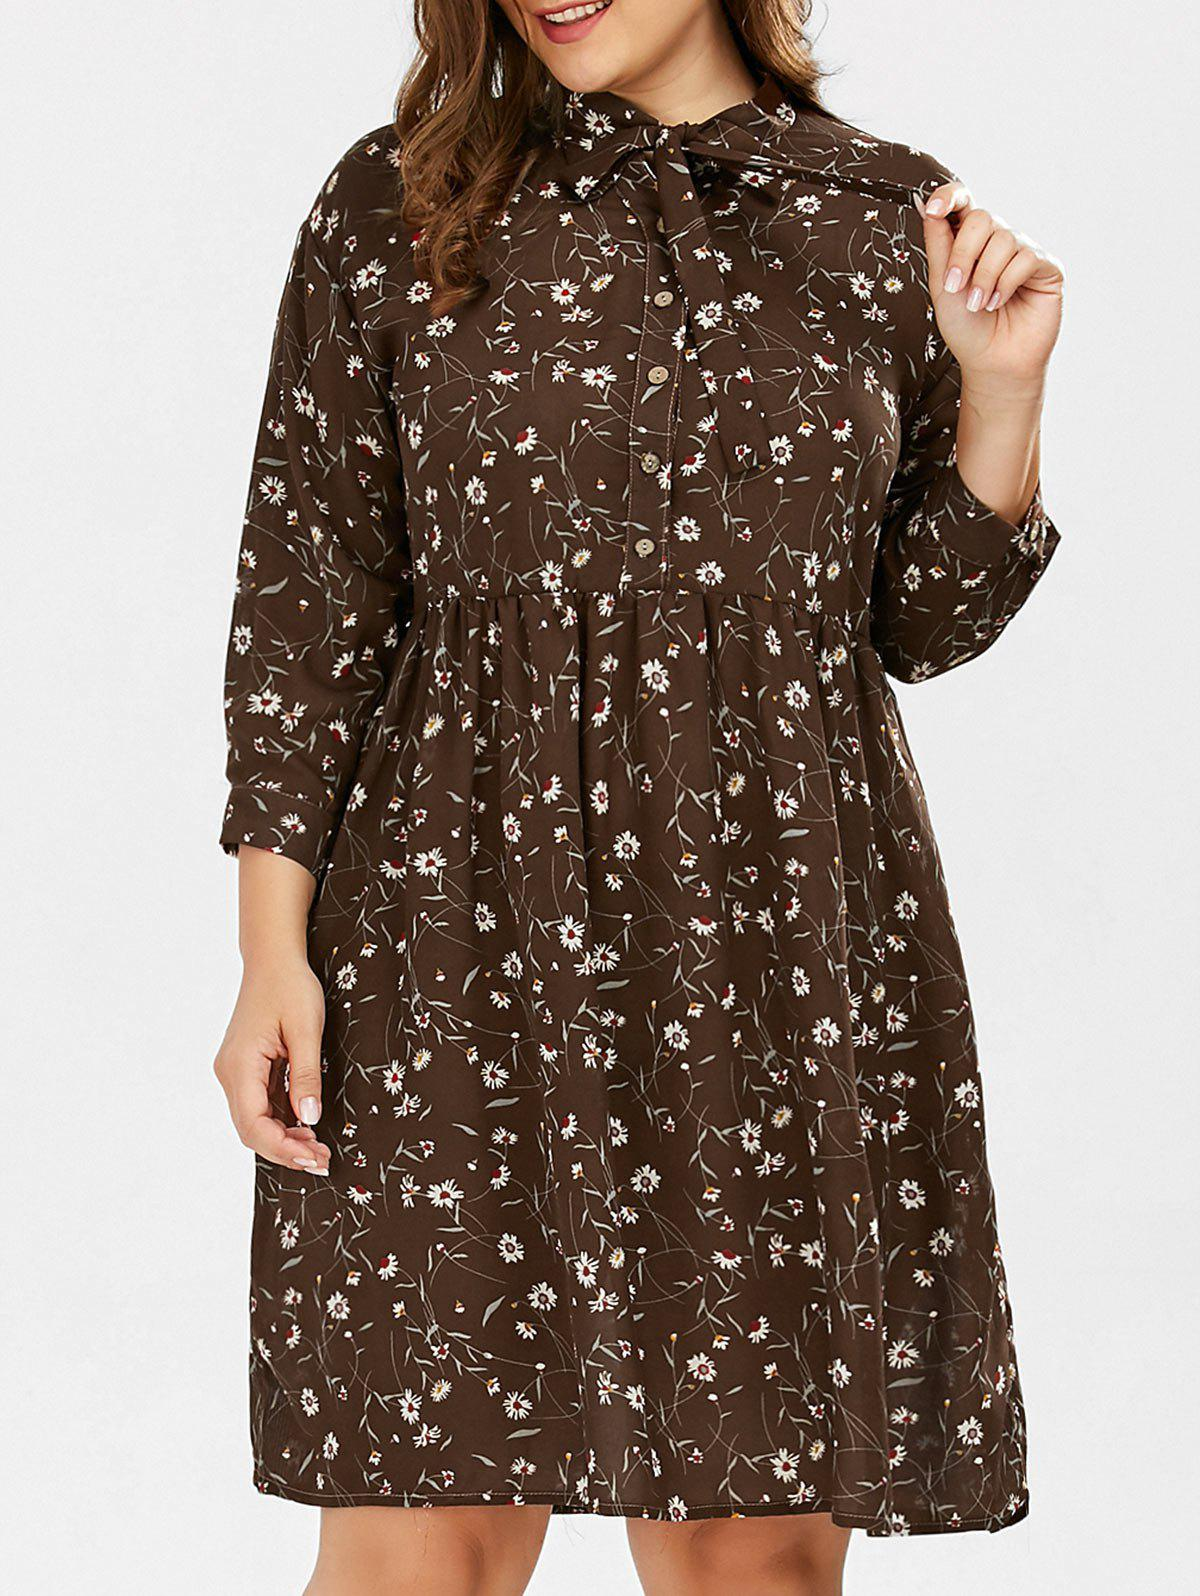 Plus Size Daisy Floral Button Down Pussy Bow Shirt Dress down daisy street